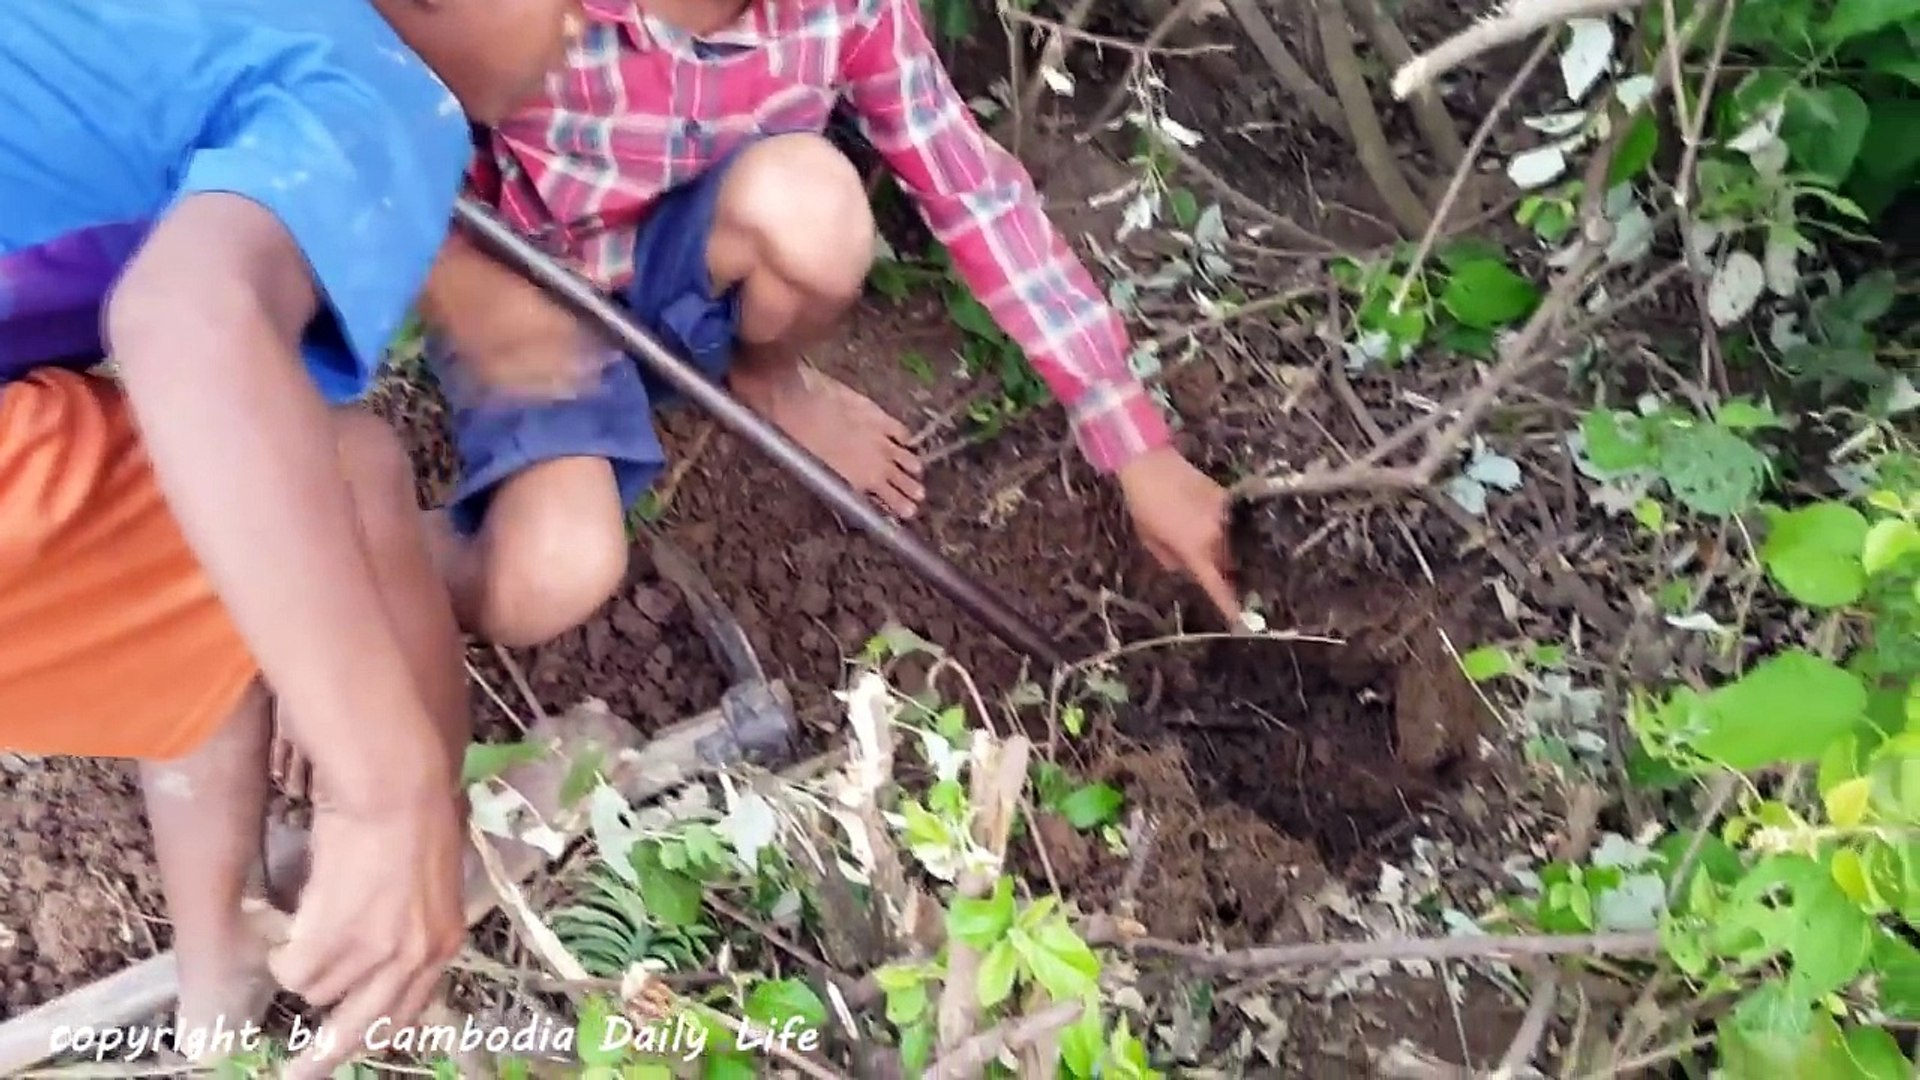 Amazing Three Brothers Catch Giant Anaconda by Digging Hole - How to Catch Snake by Diggin